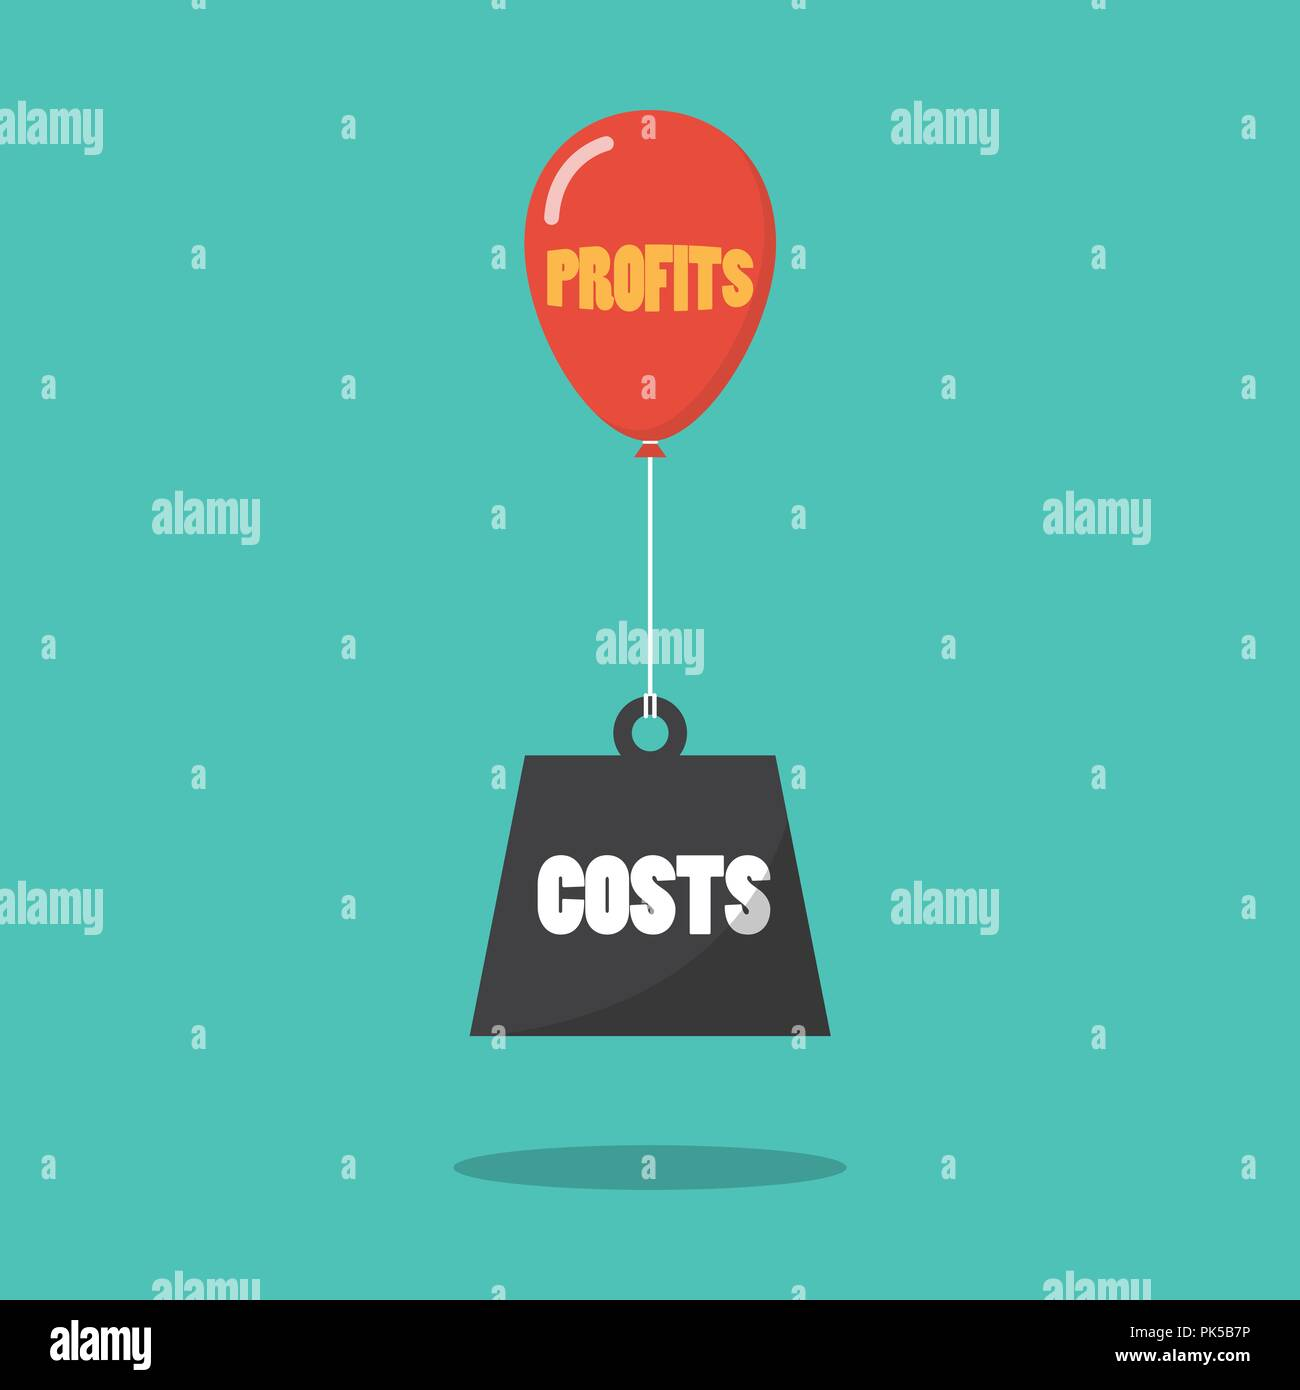 Profits and costs concept. Business concept vector illustration - Stock Vector